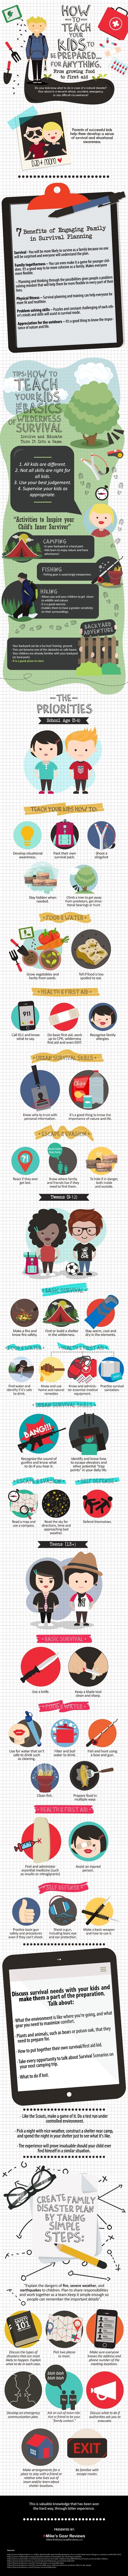 How to Teach Your Kids to be Prepared for Anything Infographic